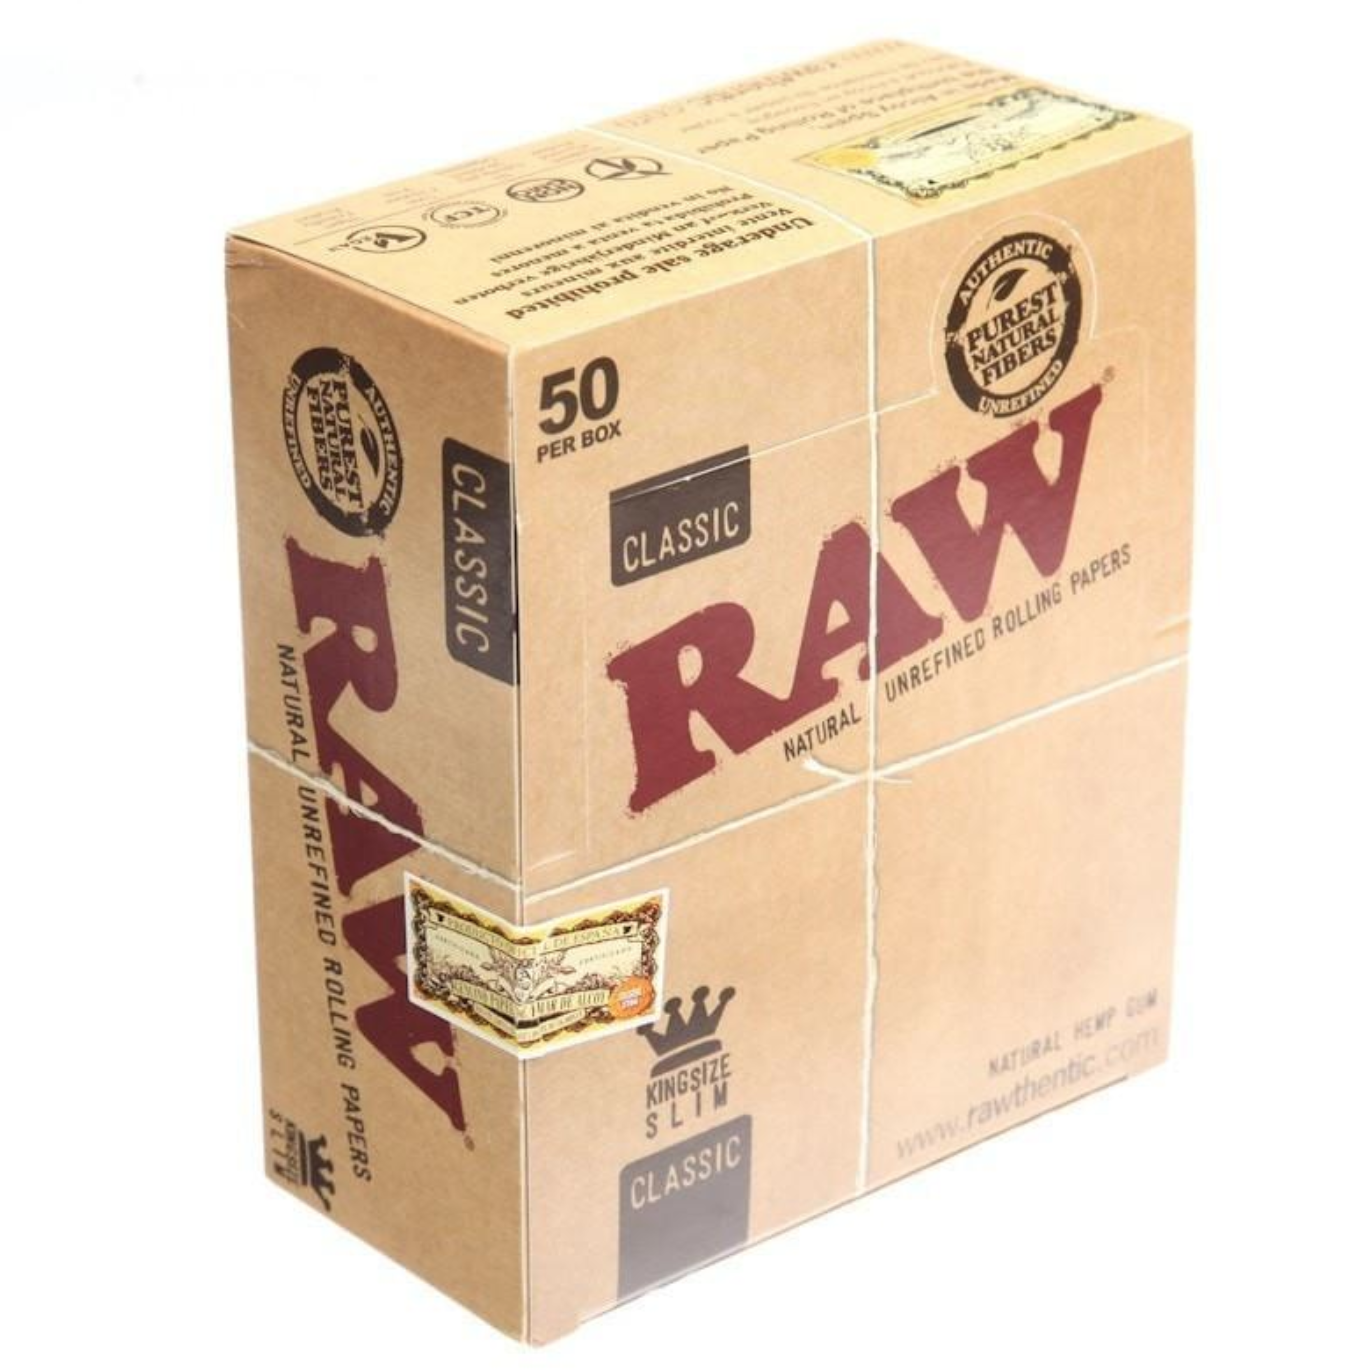 RAW King Size Slim Classic Rolling Papers - 1 Full New Box - 50 Packets Genuine 2